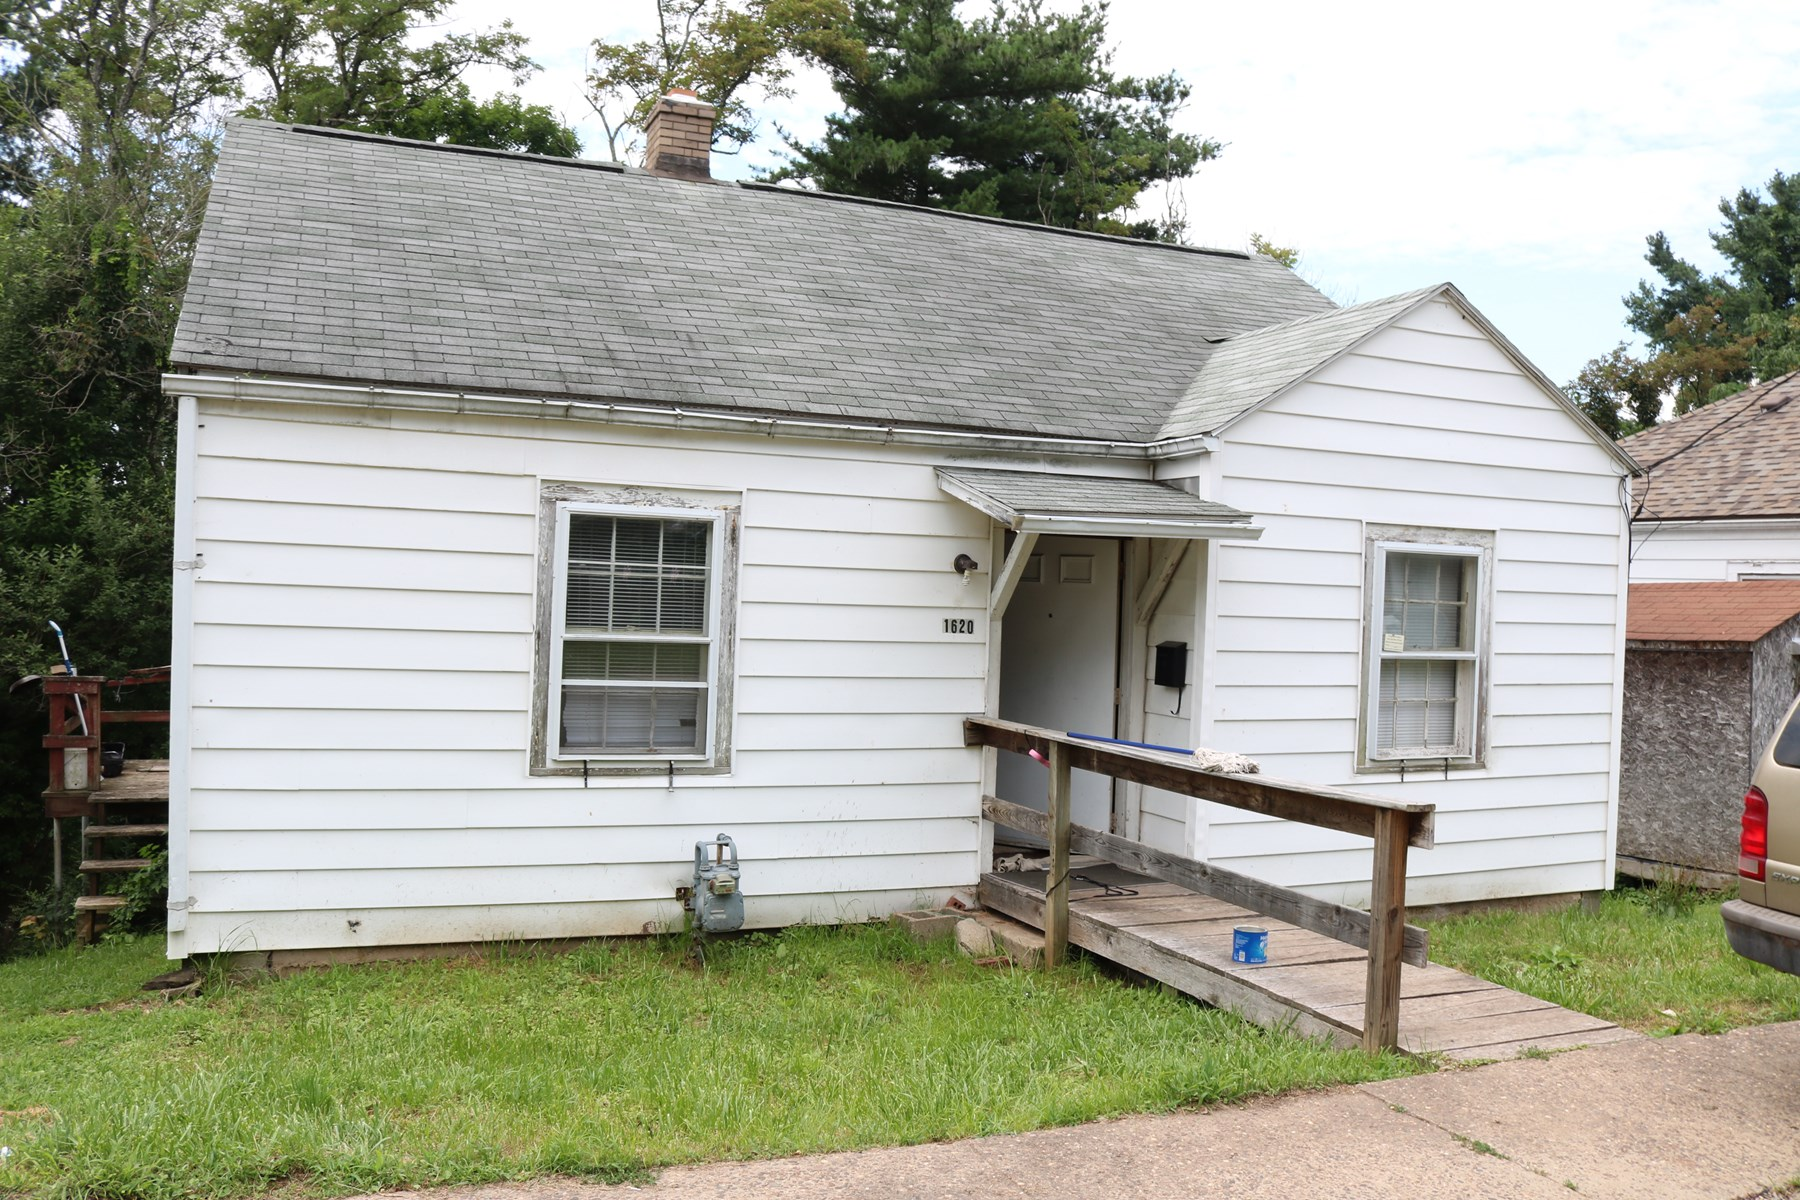 Real Estate Auction - Homeowners/Investors Min Bid $10,000